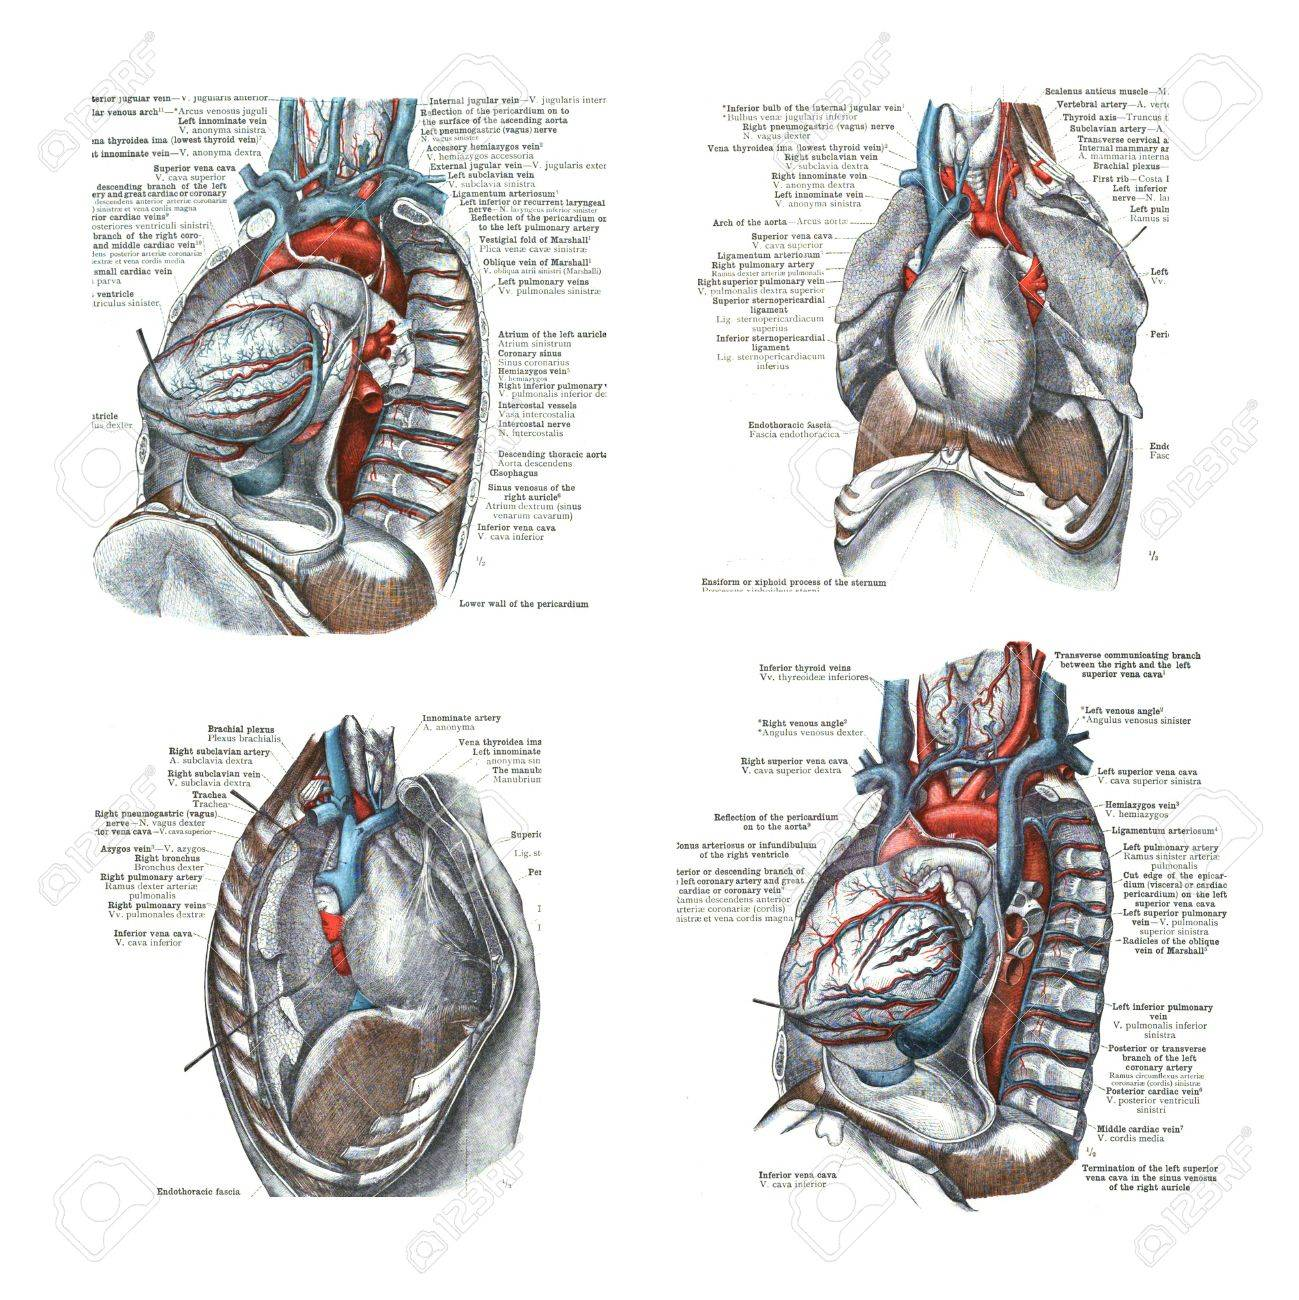 4 Views Of The Heart And Thoracic Cavity From An Atlas Of Stock